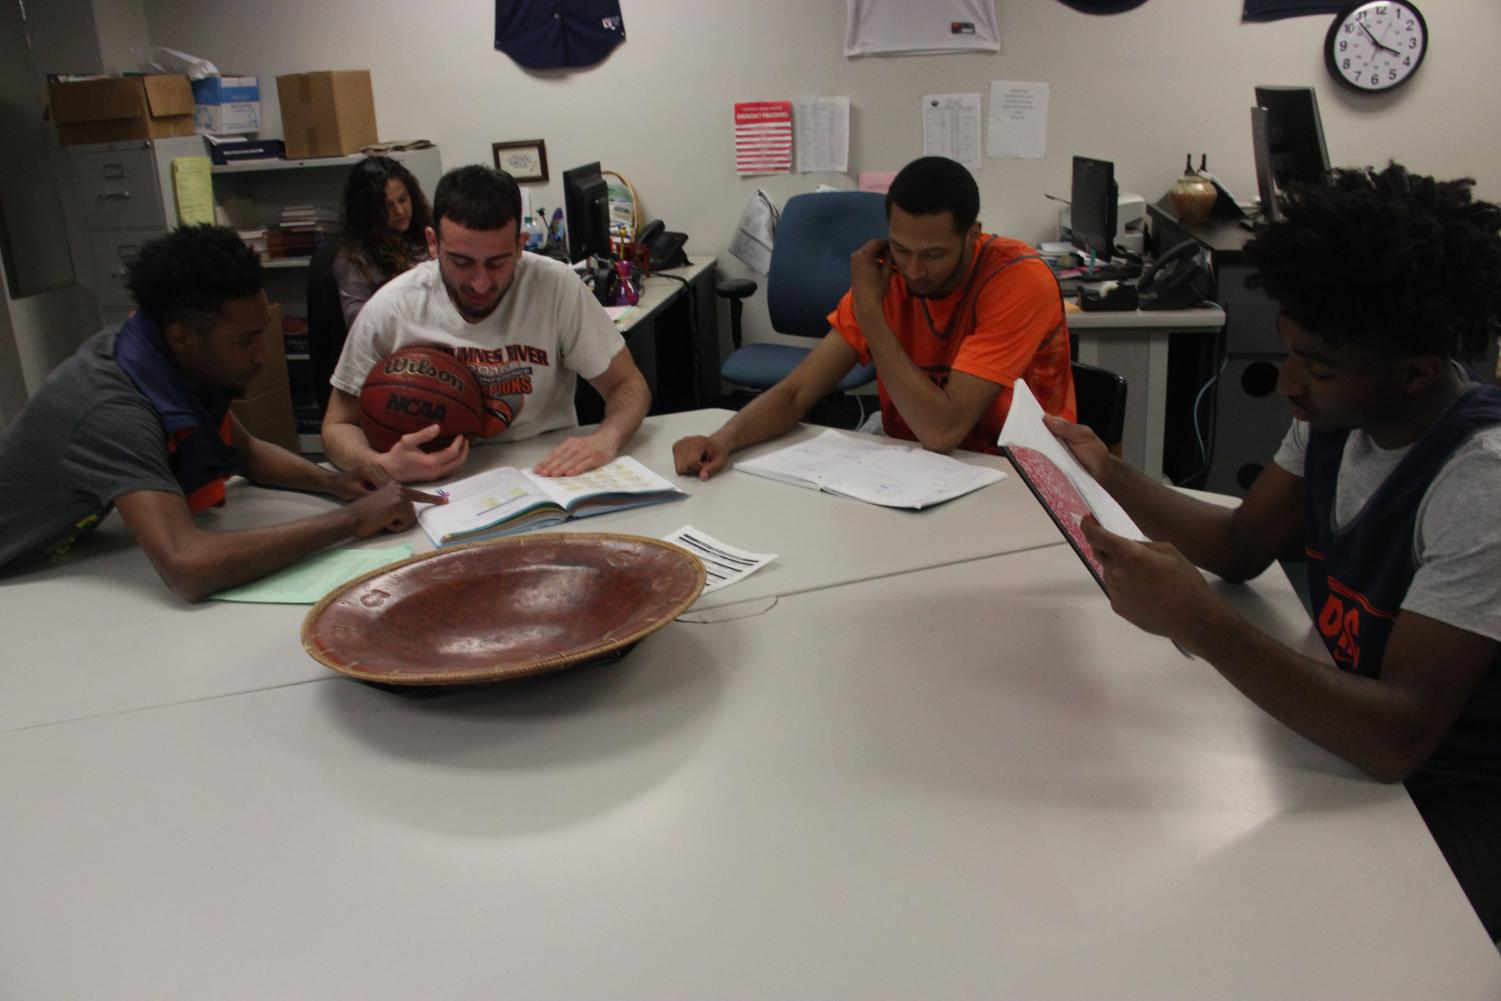 Members of the men's basketball team putting in time in the study hall in CAC 104 to keep their grades up so they can stay on the court.